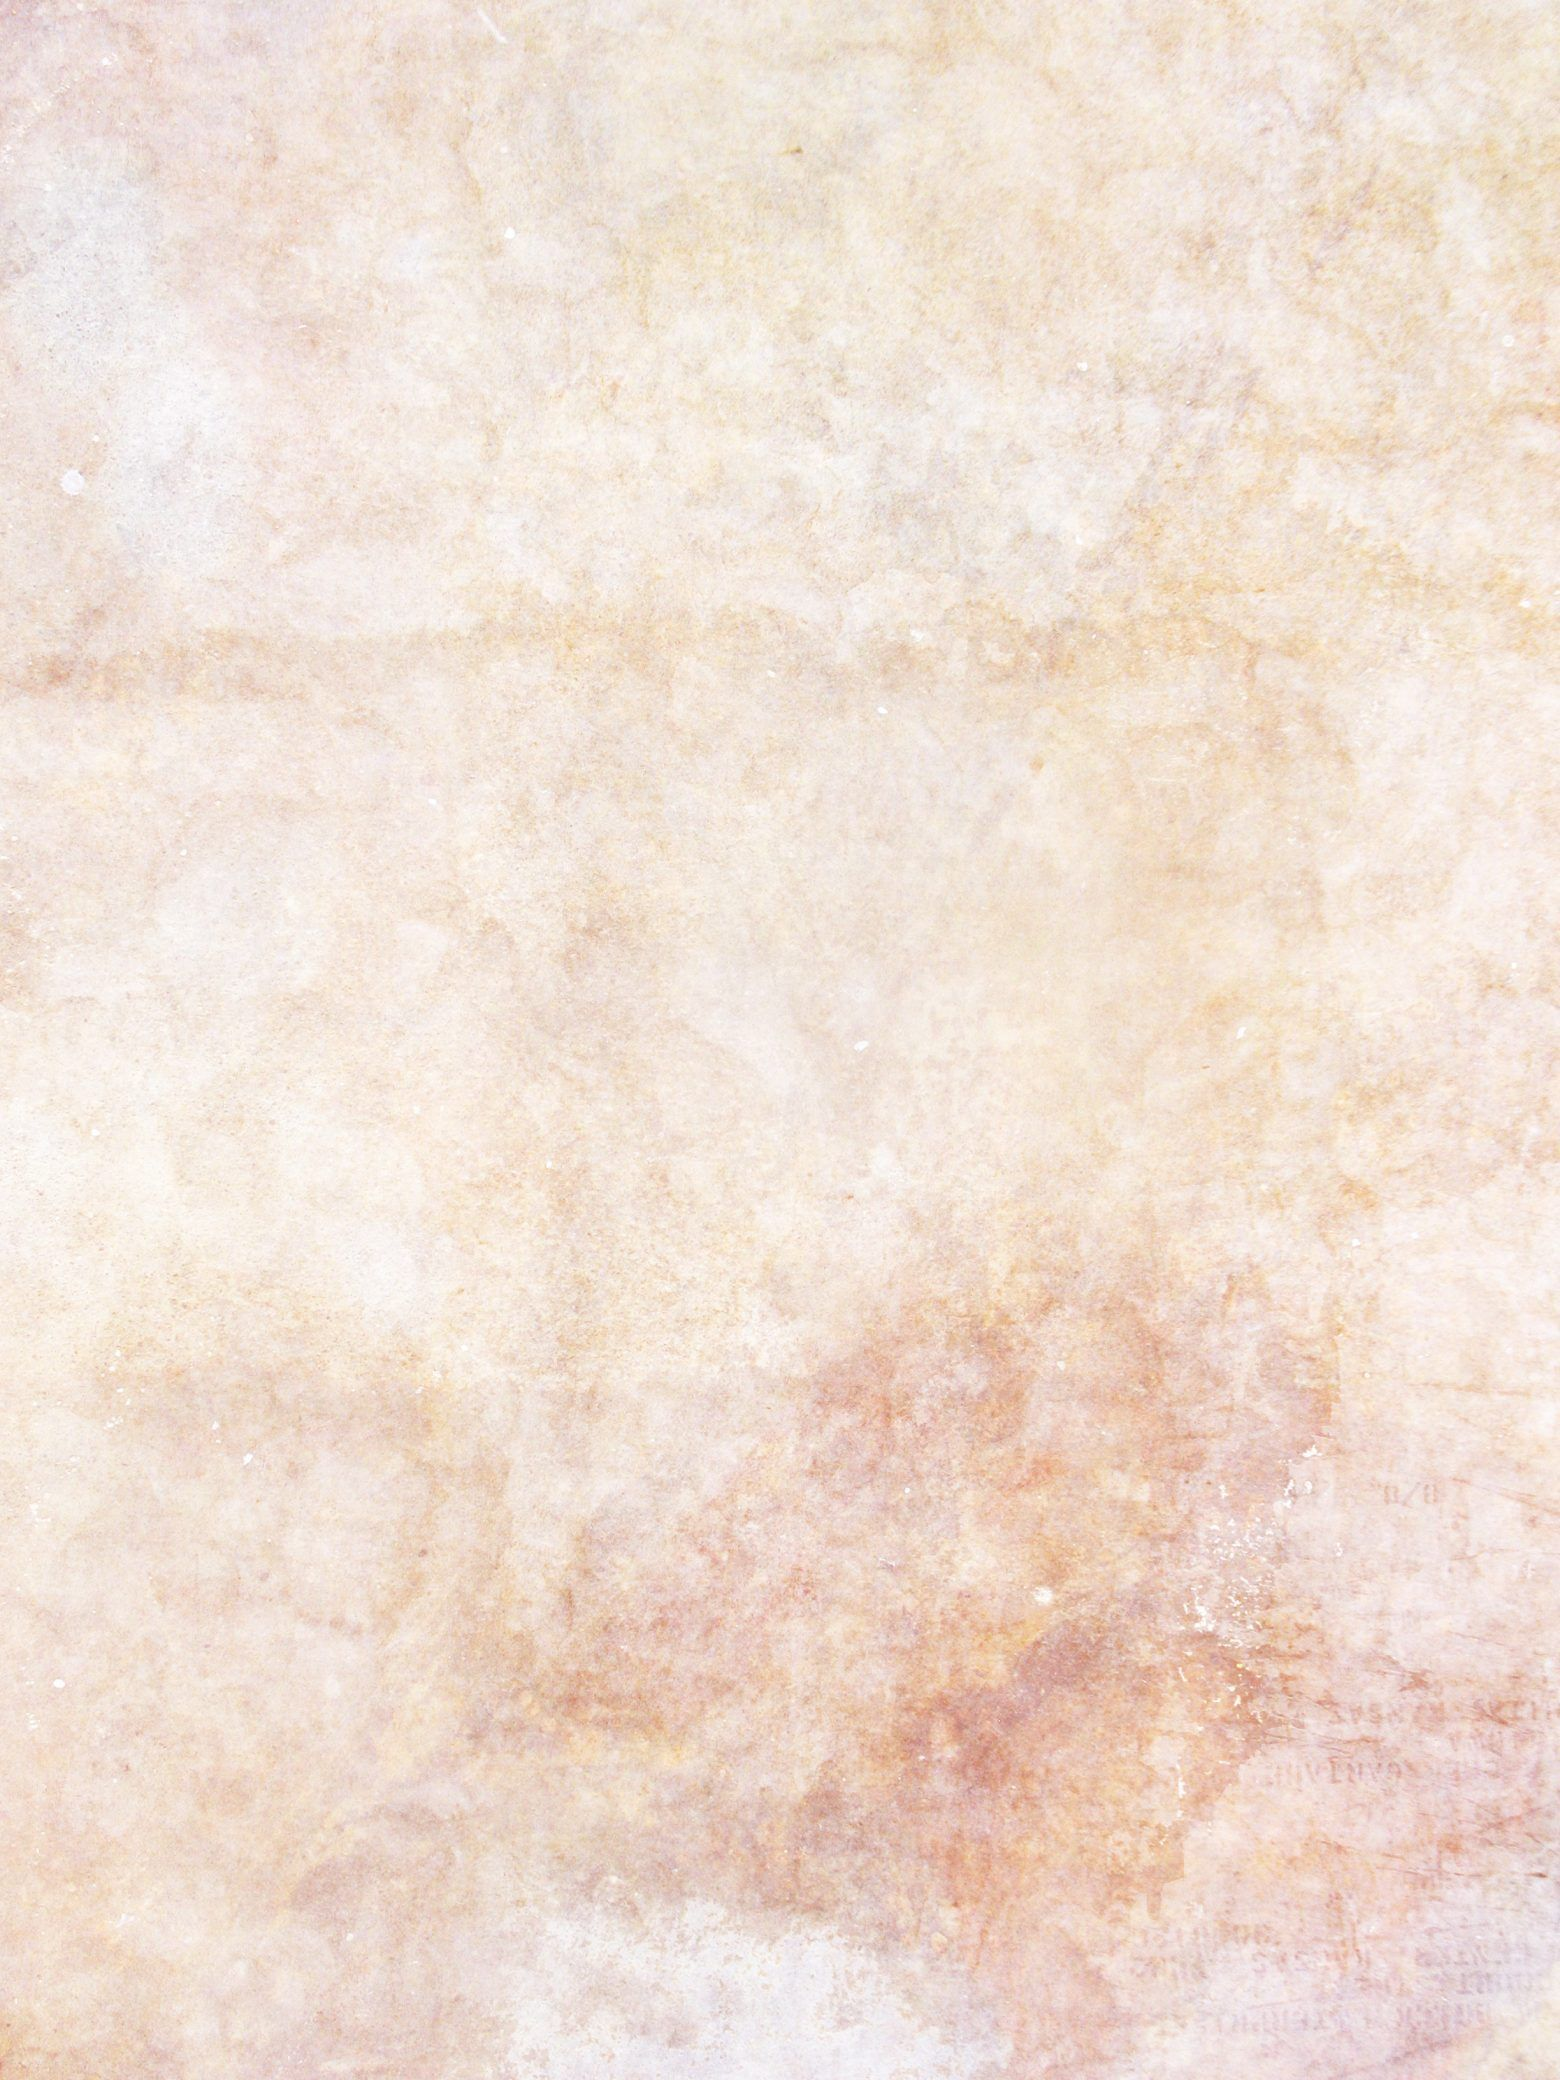 Free Delicate Grunge Texture Texture L T Free Delicate Grunge Texture Texture L T Estas En El Lugar Correcto Pa In 2020 Photoshop Textur Texturen Aquarell Textur